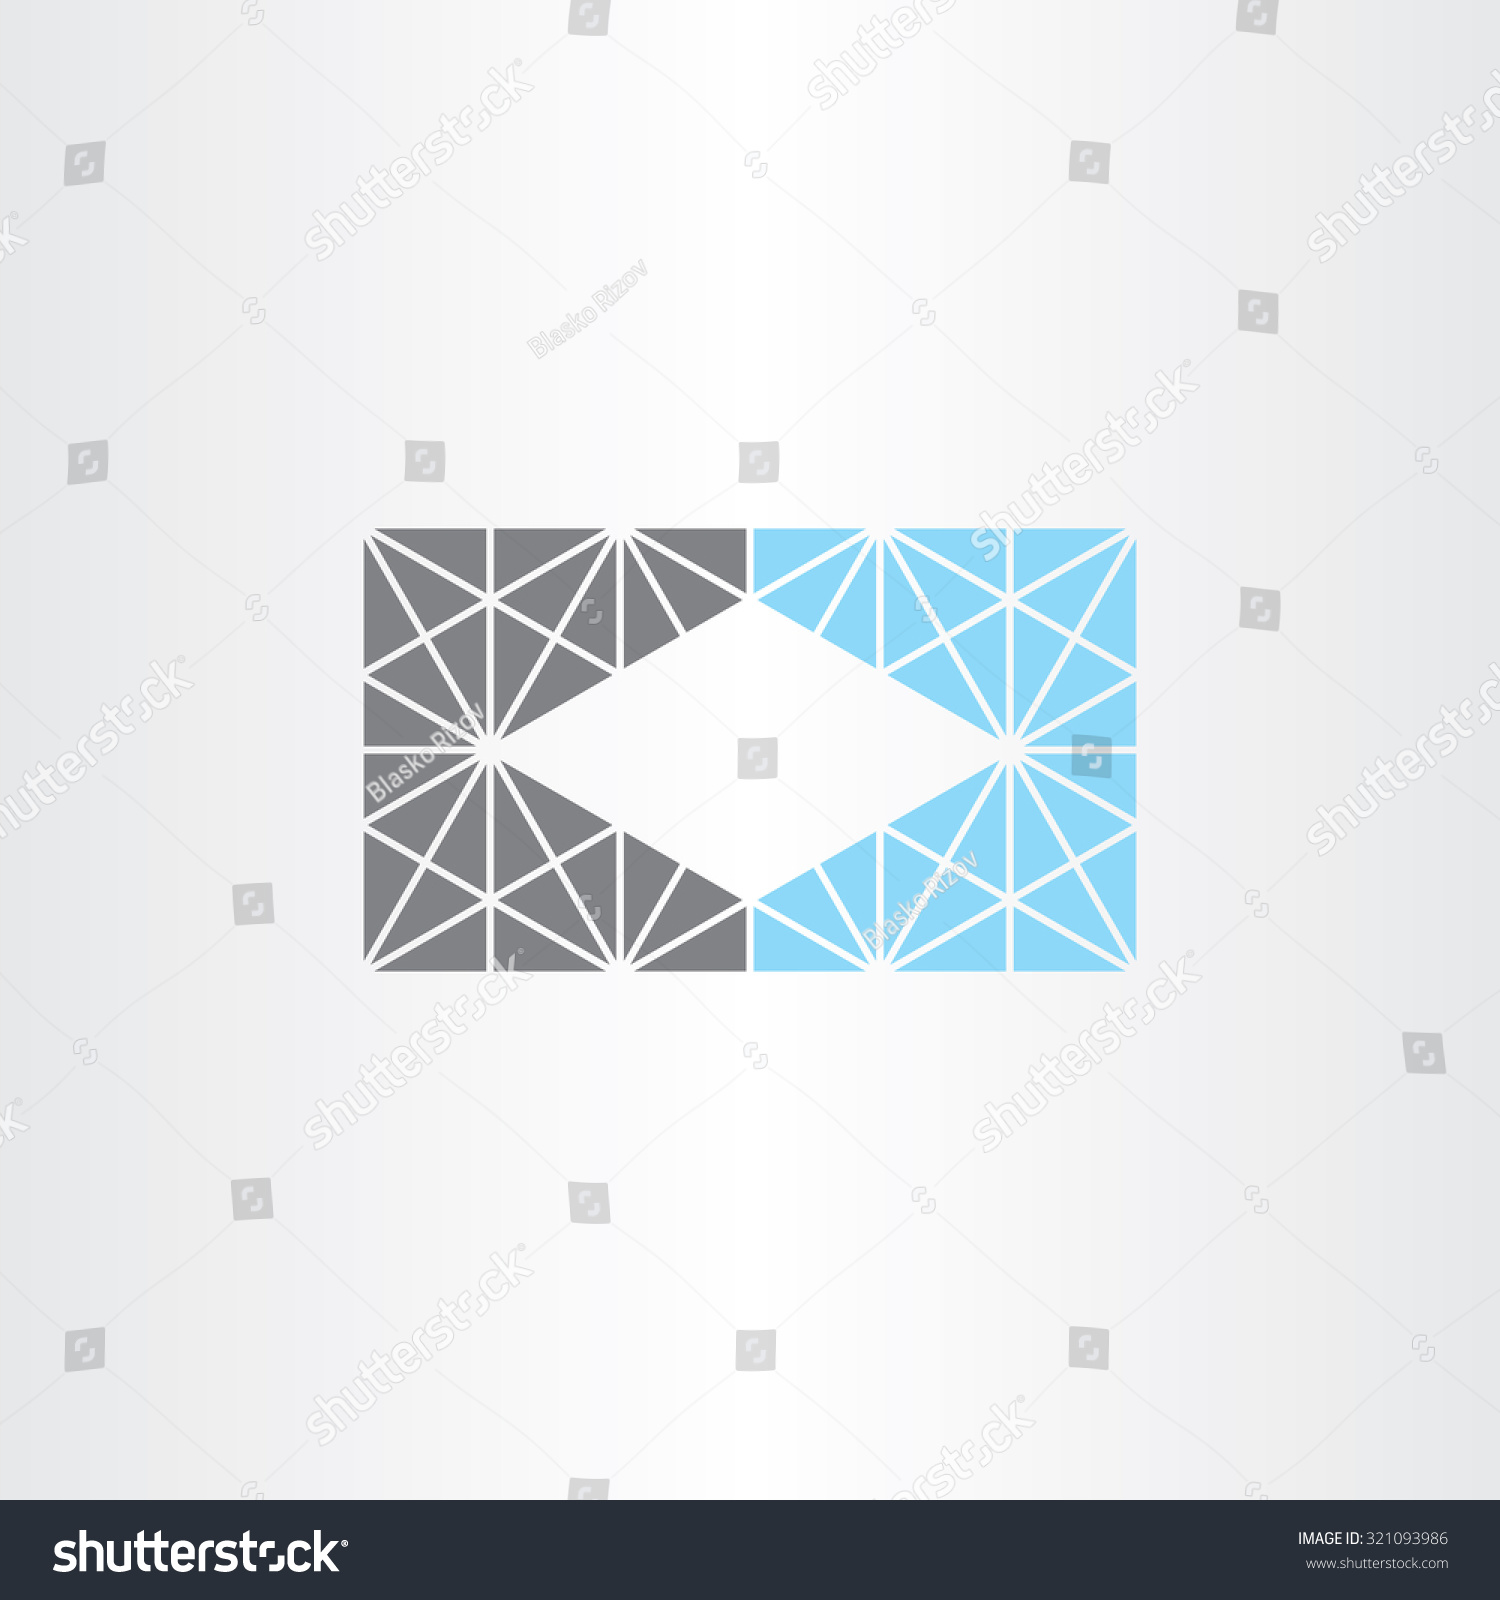 Unusual Geometric Business Card Frame Background Stock Vector ...